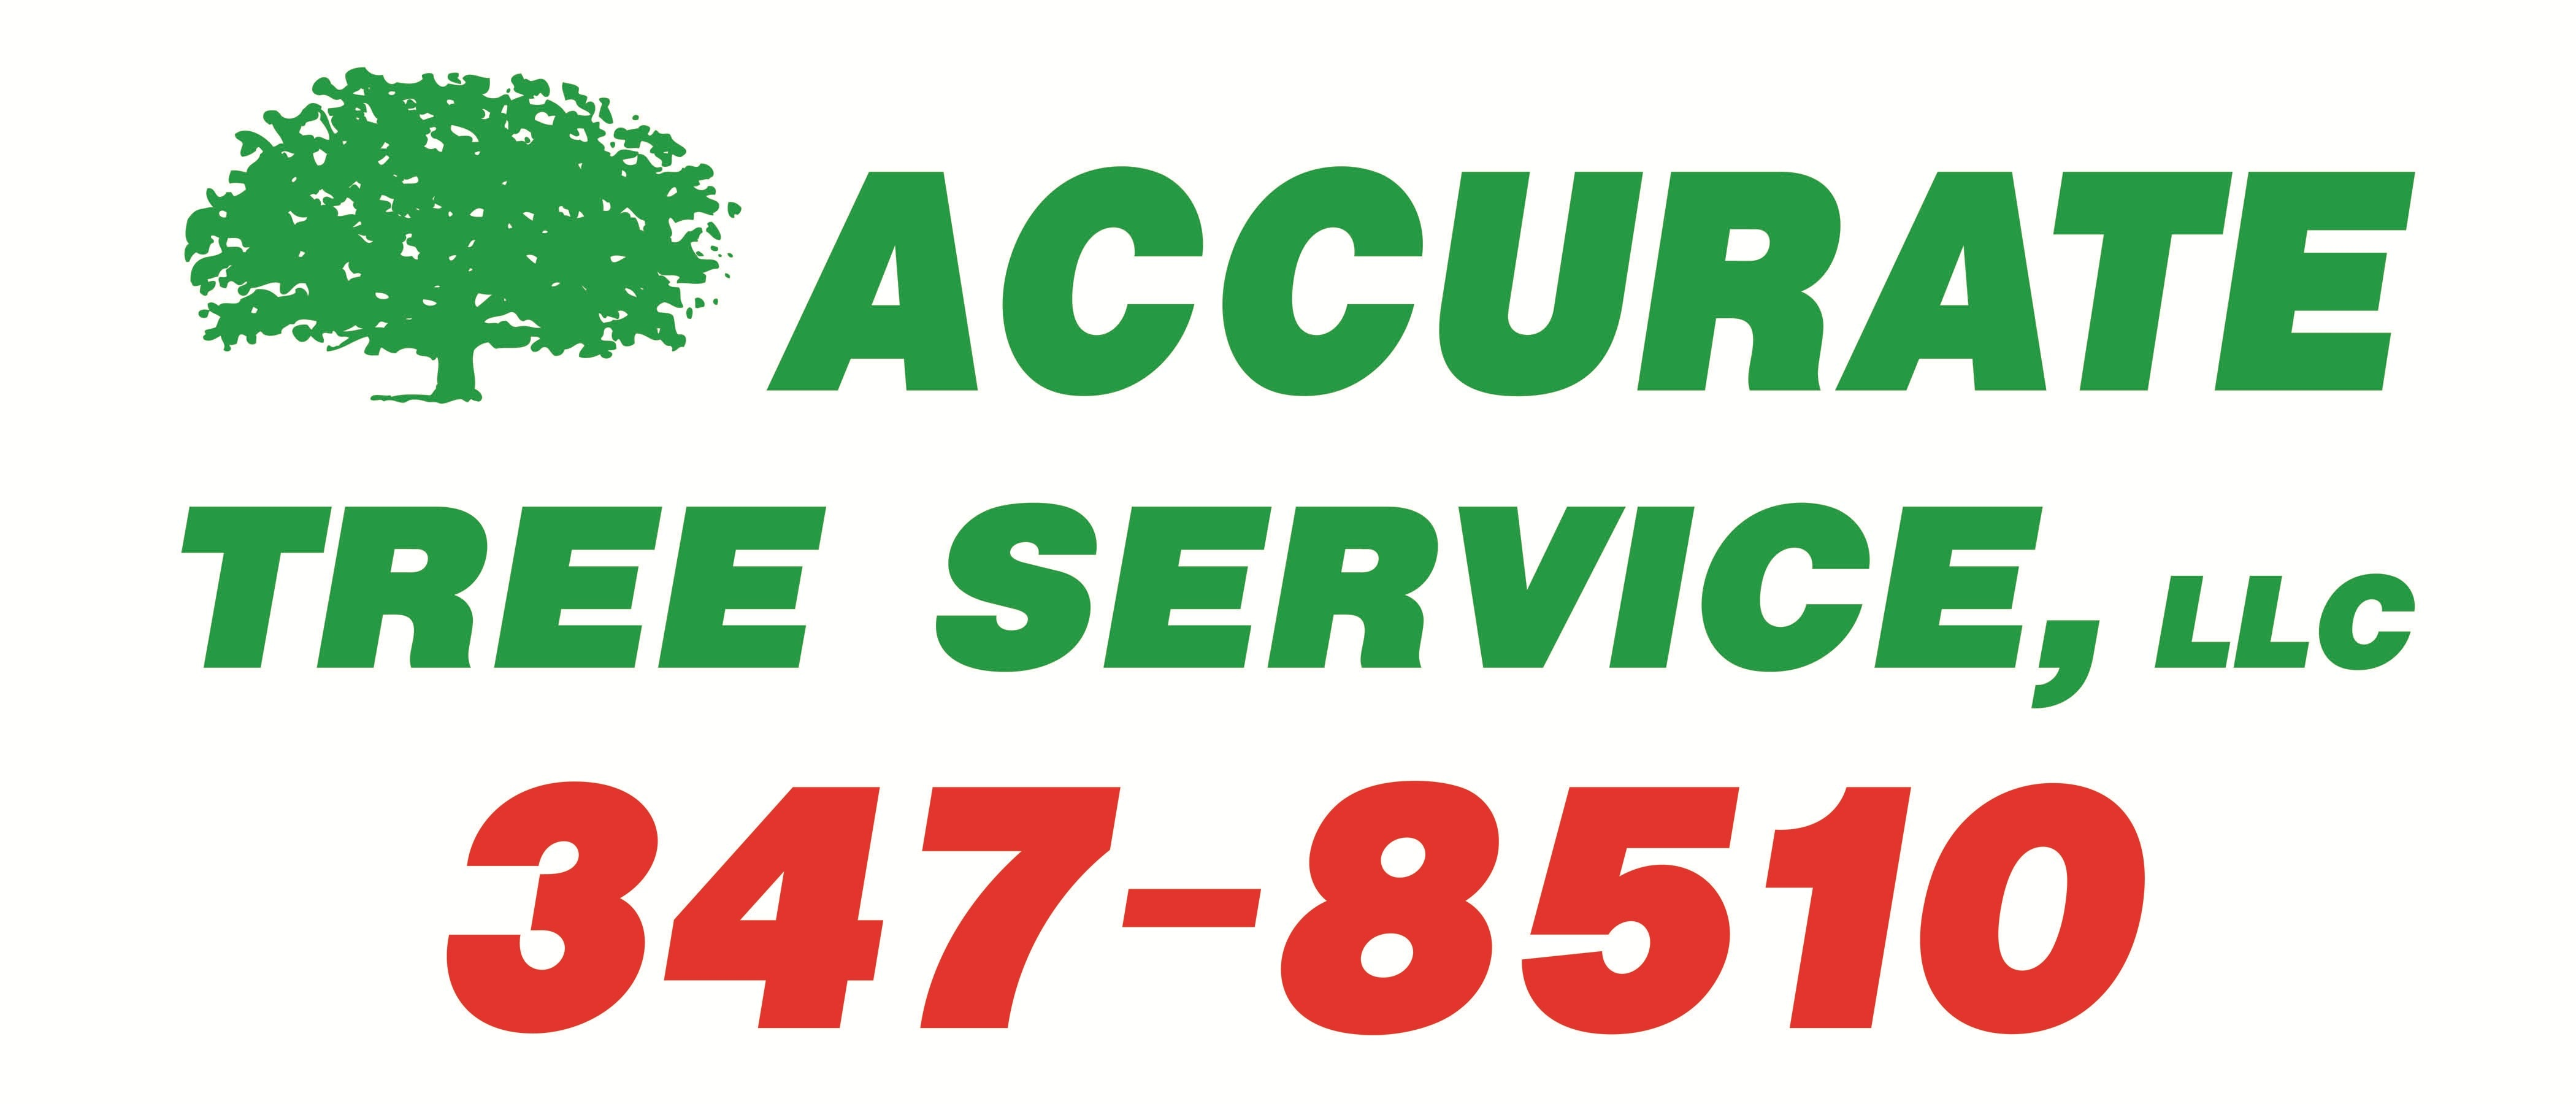 Accurate Tree Service LLC logo